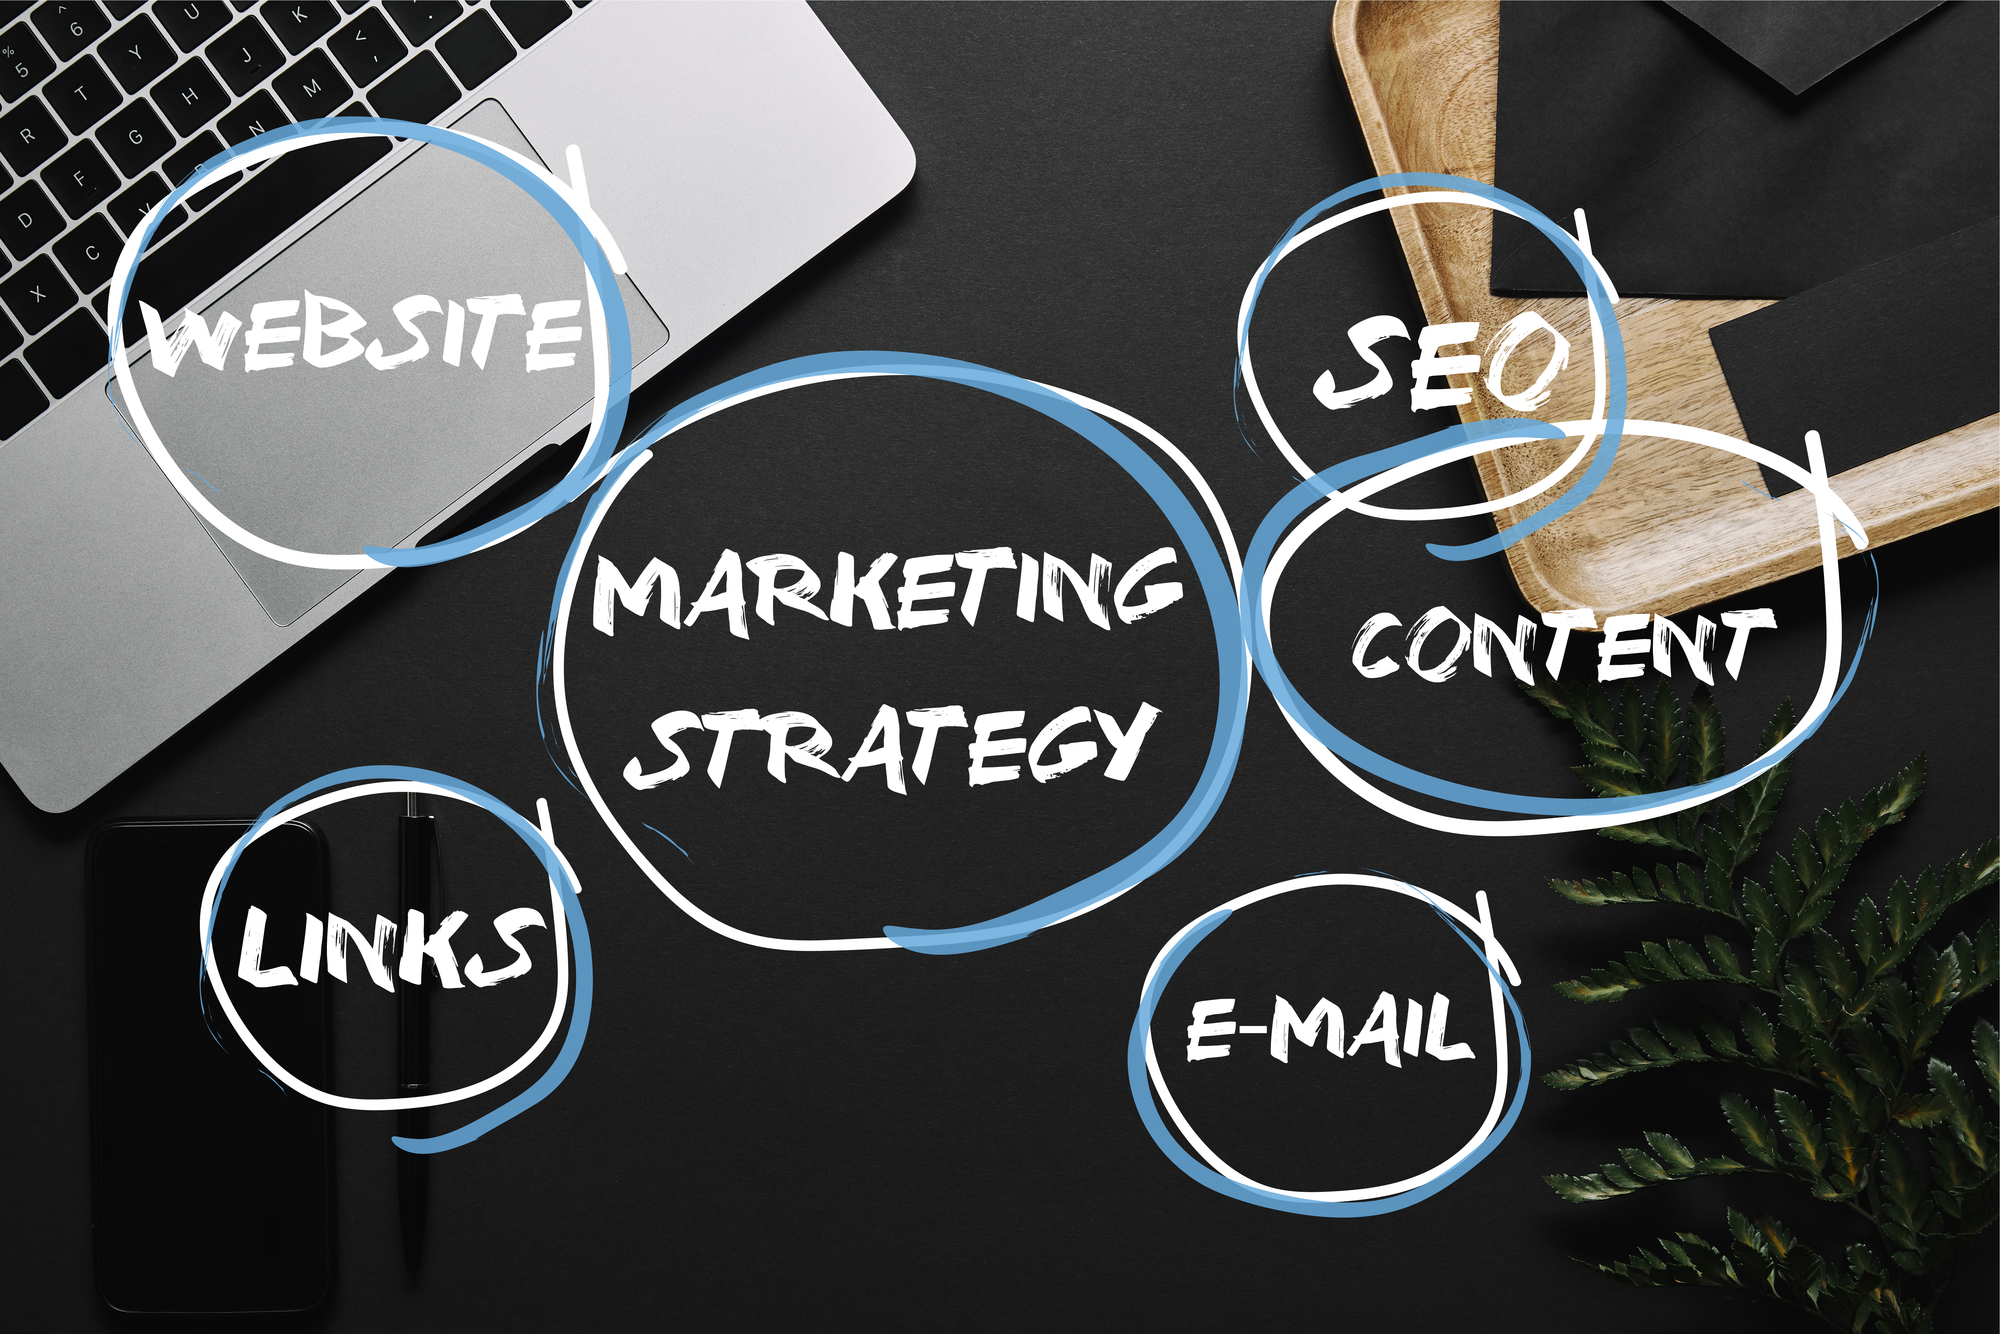 Smartphone Laptop Black Background Marketing Strategy Seo Content Mail Links